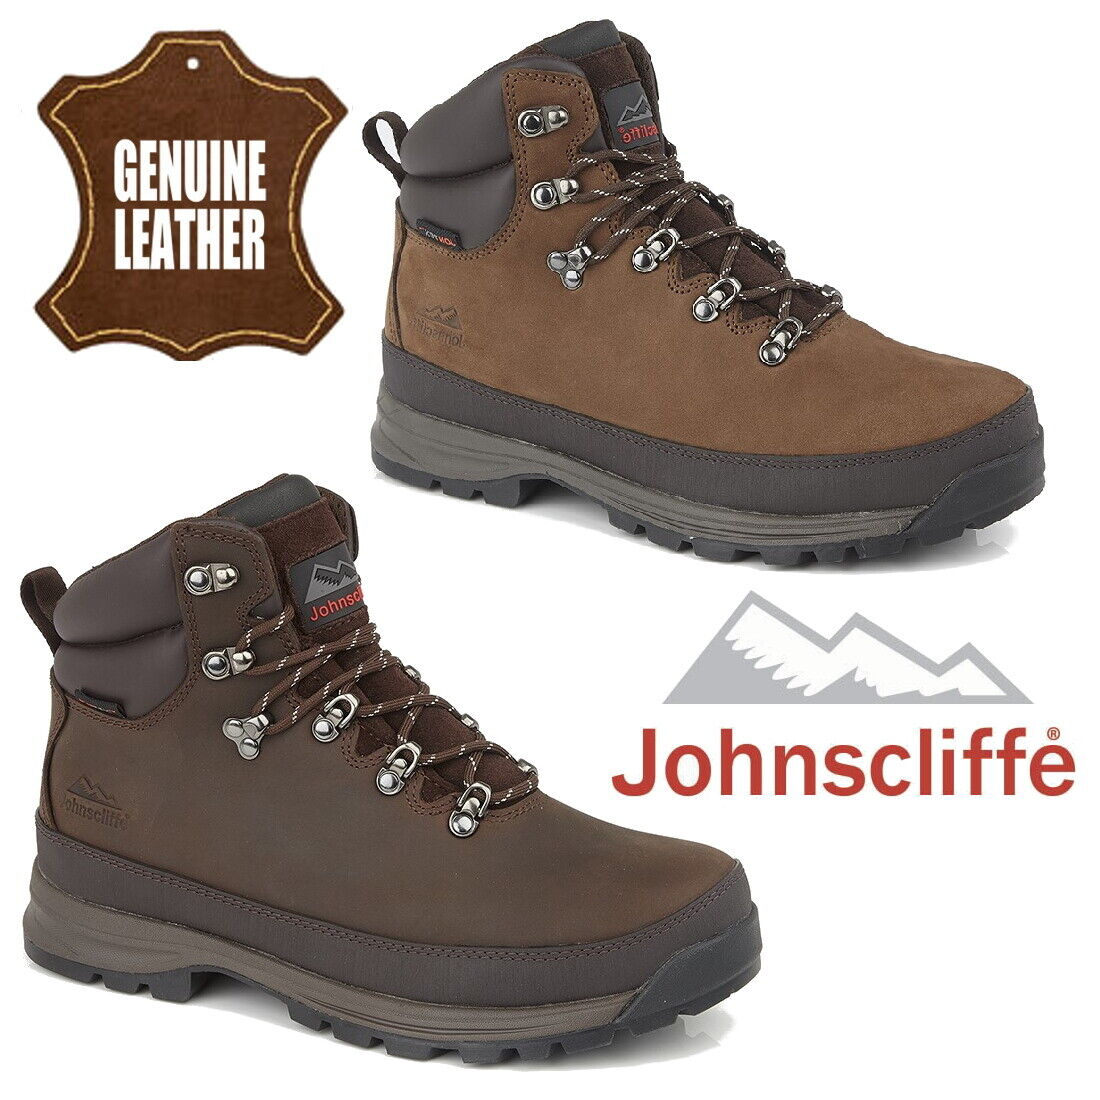 9be2502e39a Details about Johnscliffe Edge Men's Leather Hiking Boots Water Resistant  Hill Walking Shoes